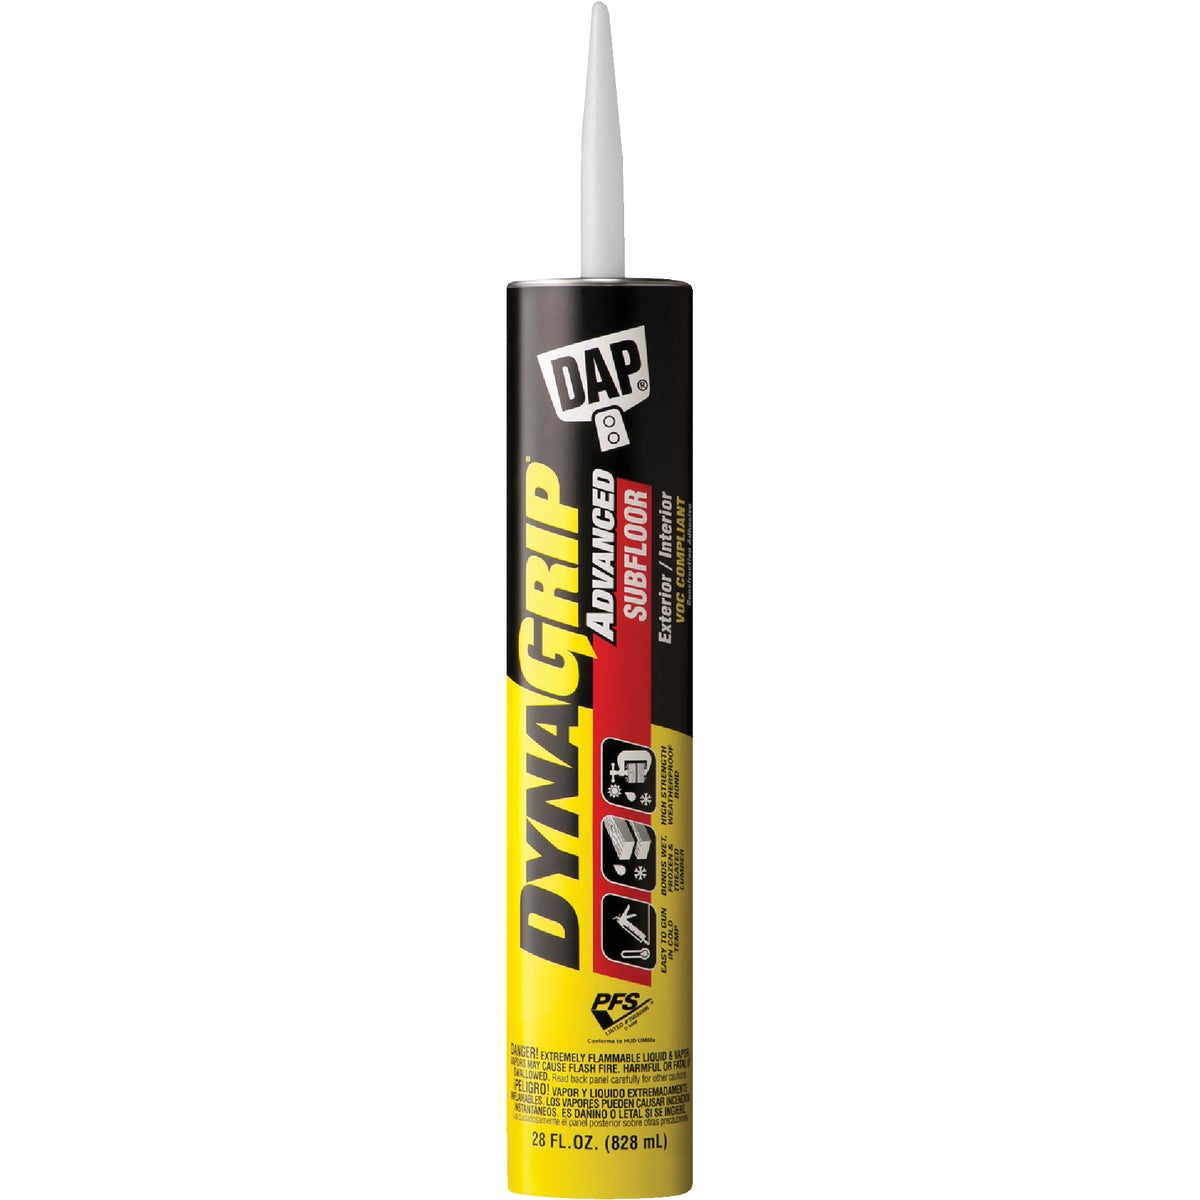 28OZ 3498 SBFLR ADHESIVE - 80052 by Dap Inc